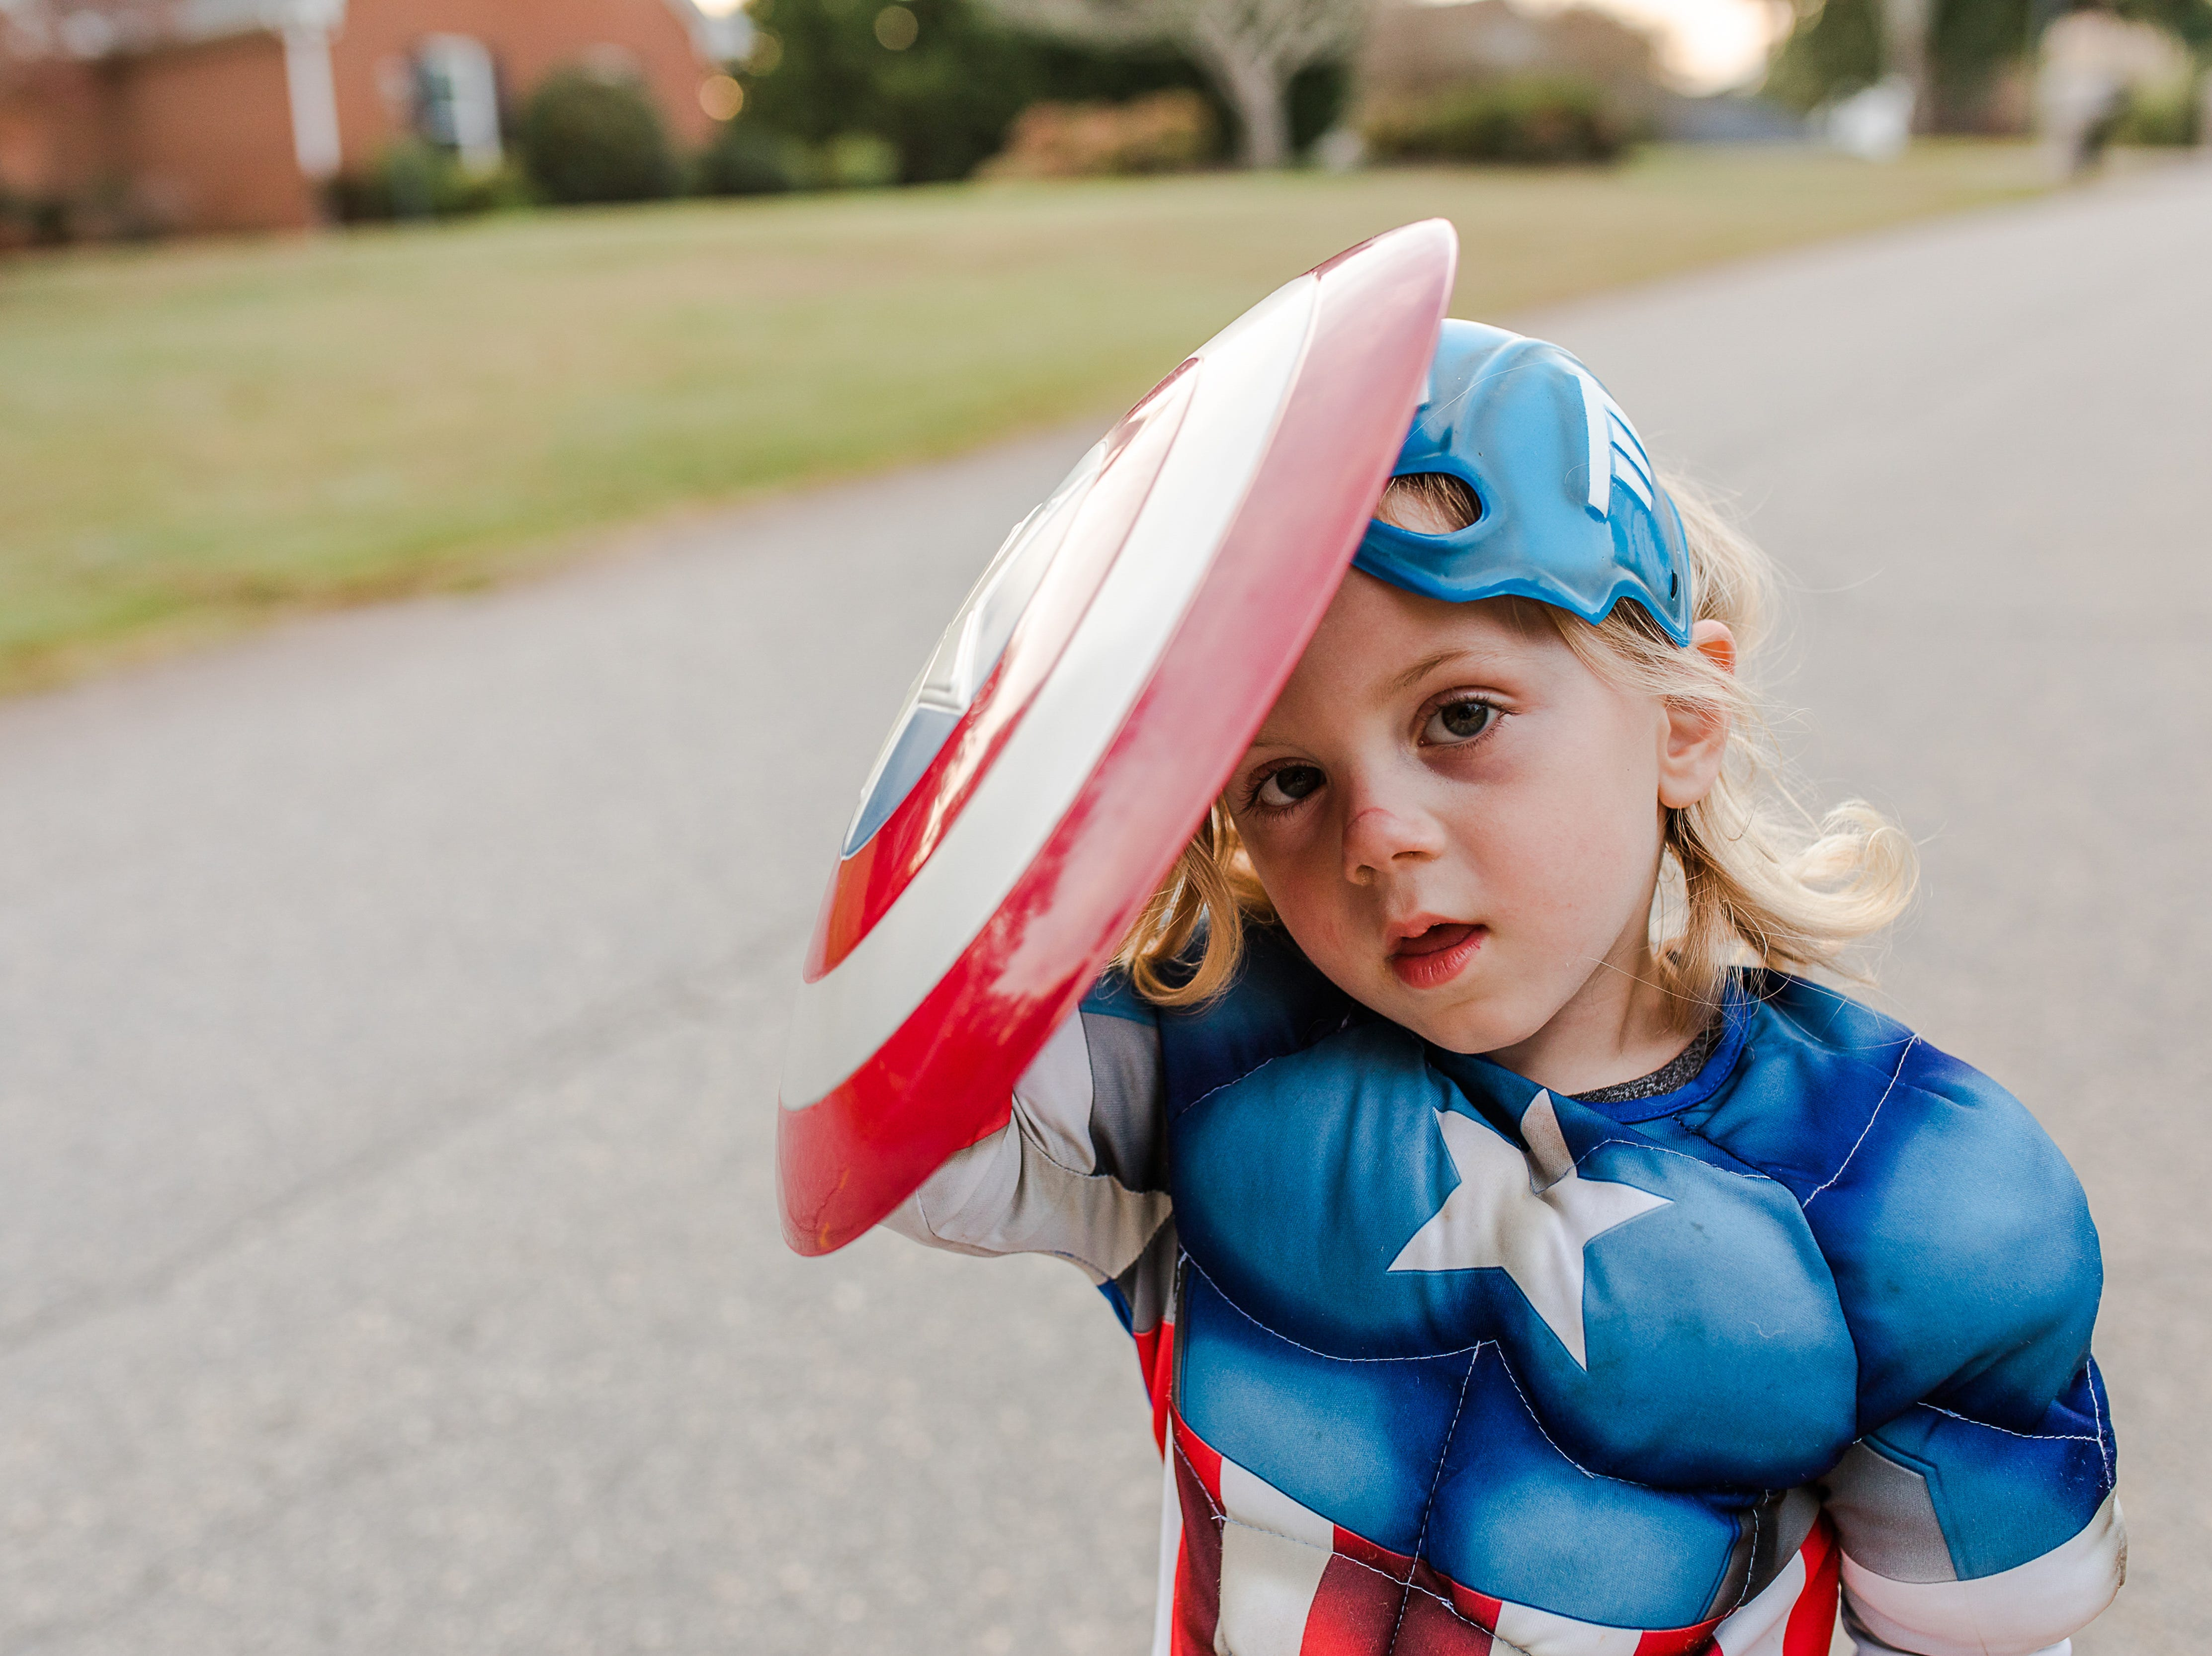 Three-year-old Everett Durkin uses his shield  while trick-or-treating in the Cobb's Glenn subdivision in Anderson Wednesday, October 31, 2018.